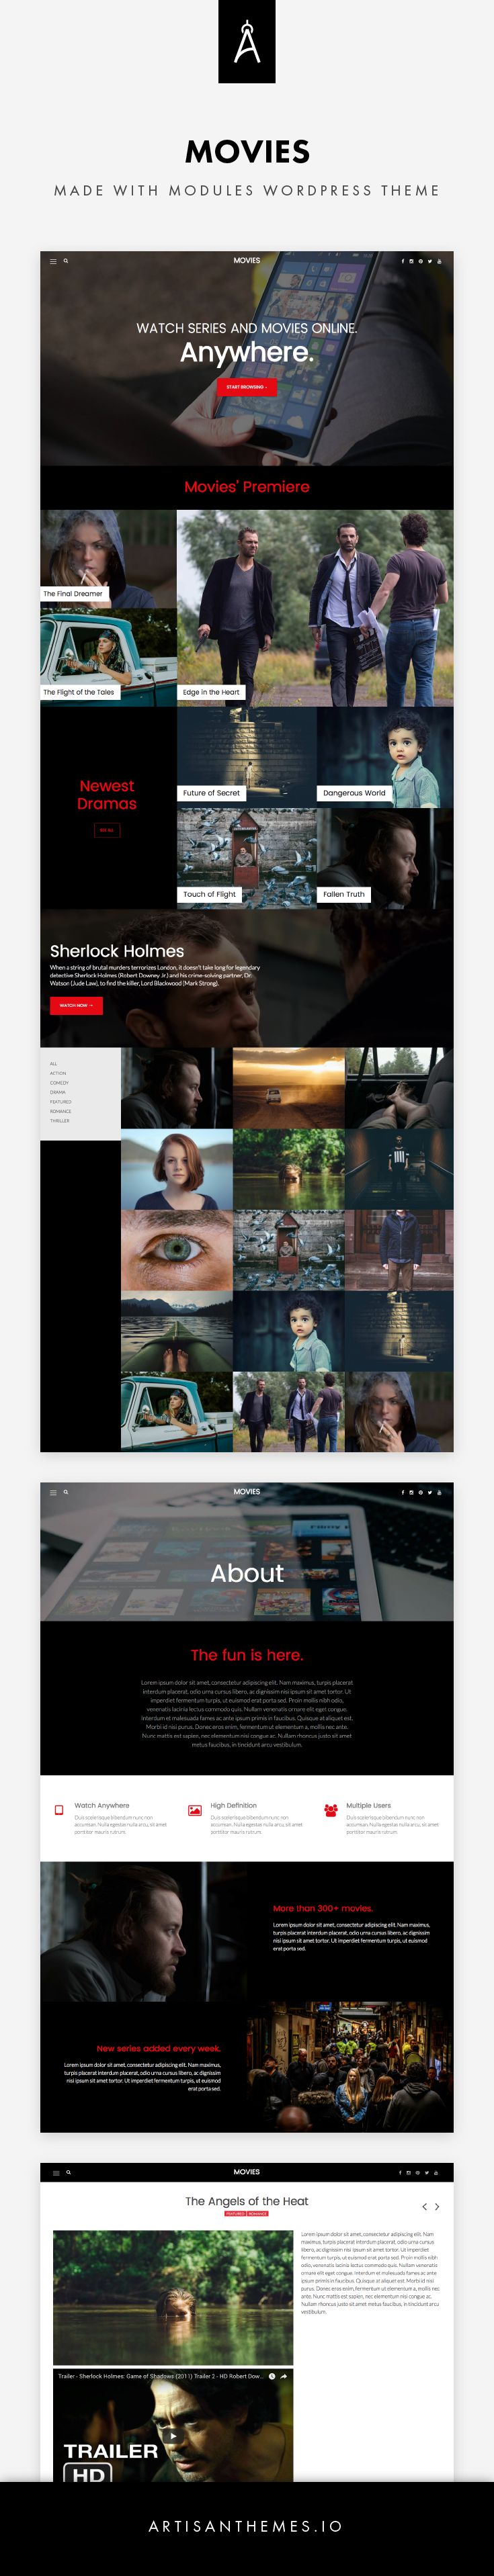 Movies, a site ready to be installed made with Modules WordPress Theme by Artisan Themes.  Inspired on a very famous online streaming site , a ready made site that can serve a movies/TV series catalog, a film production company or any other entertainment site.